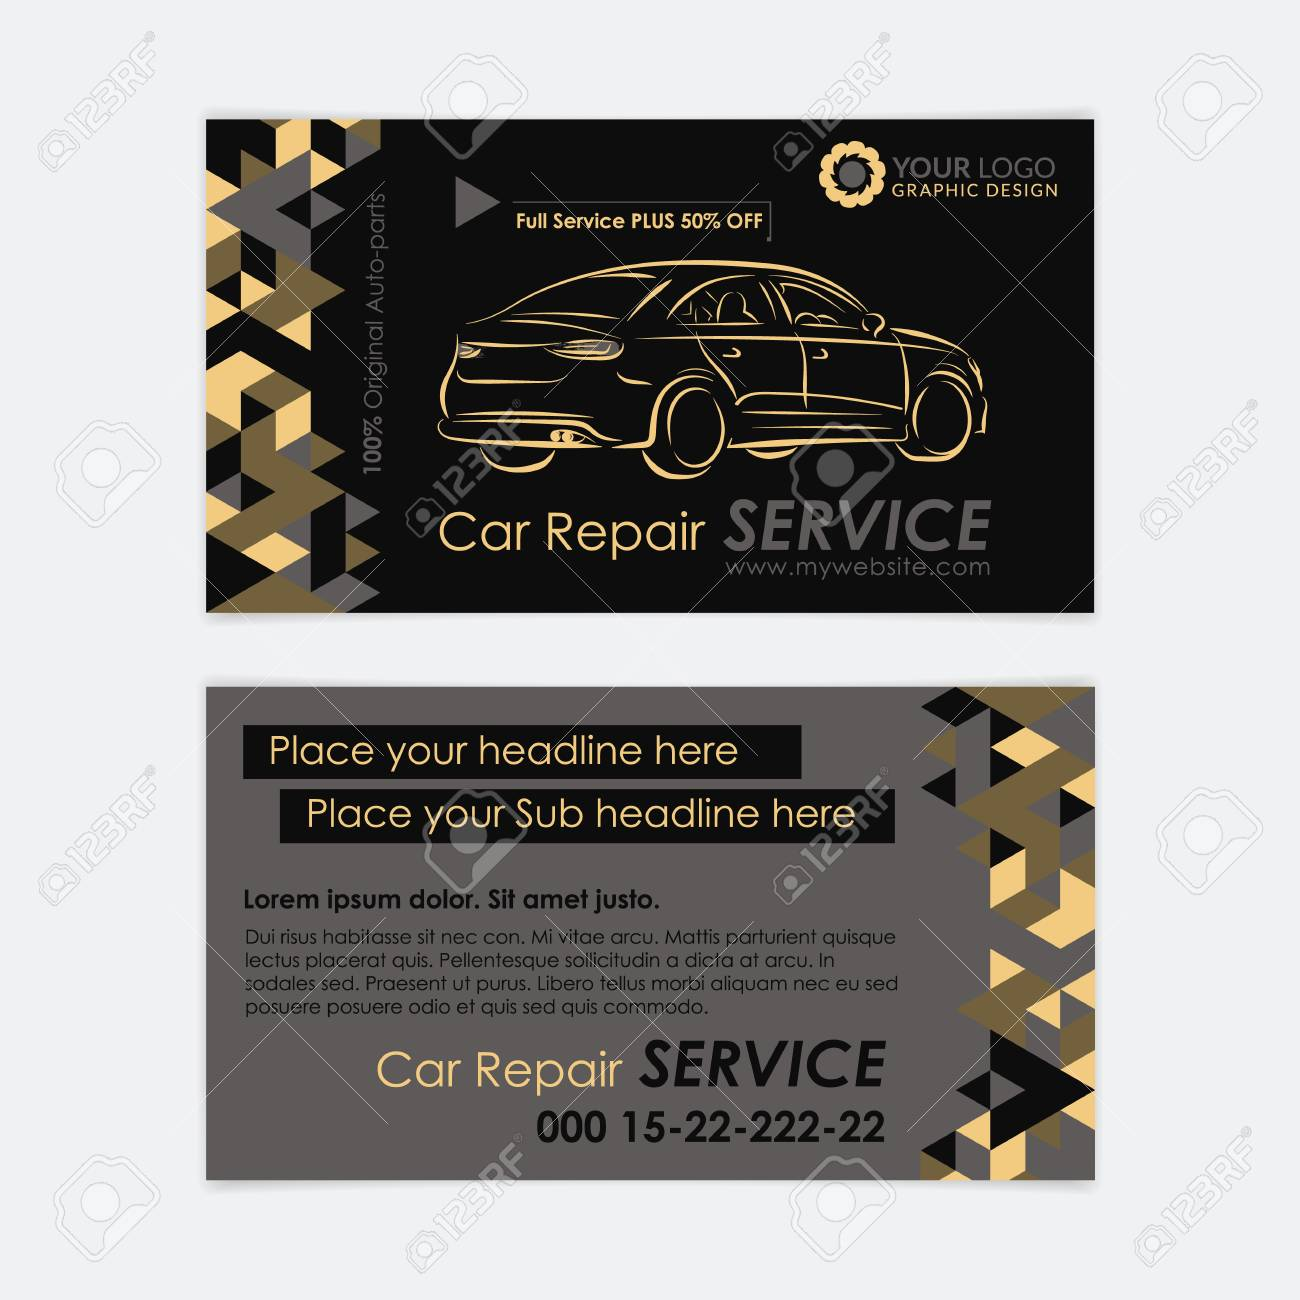 Automotive service business card template car diagnostics and automotive service business card template car diagnostics and transport repair create your own business reheart Gallery